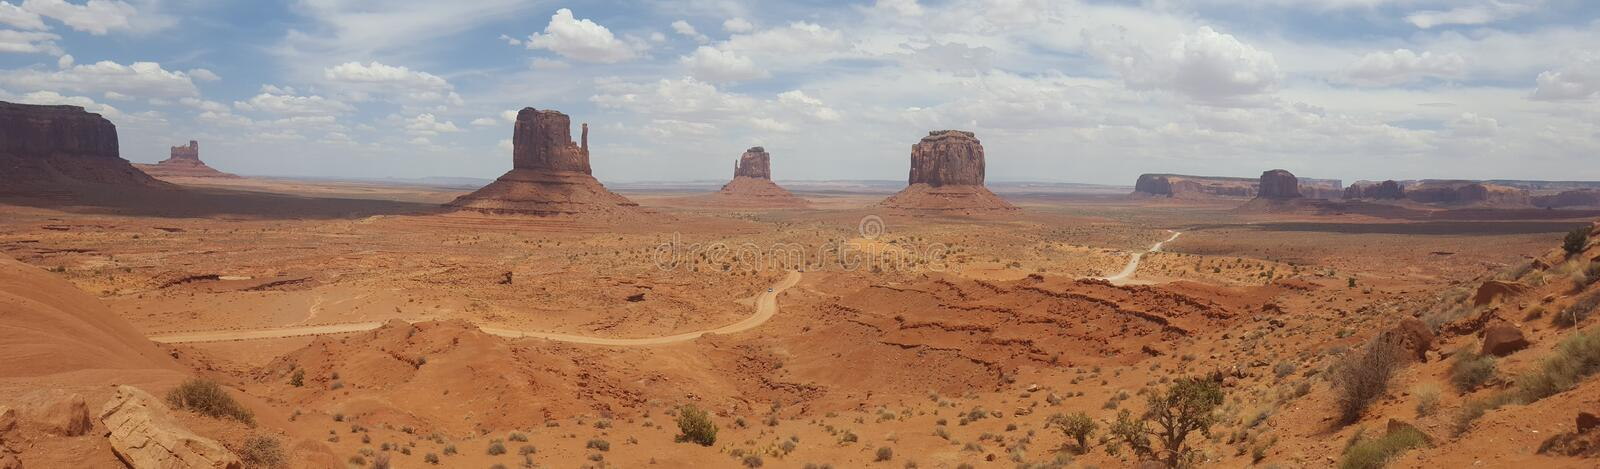 Plain Panorama United States Monument Valley Arizona stock fotografie